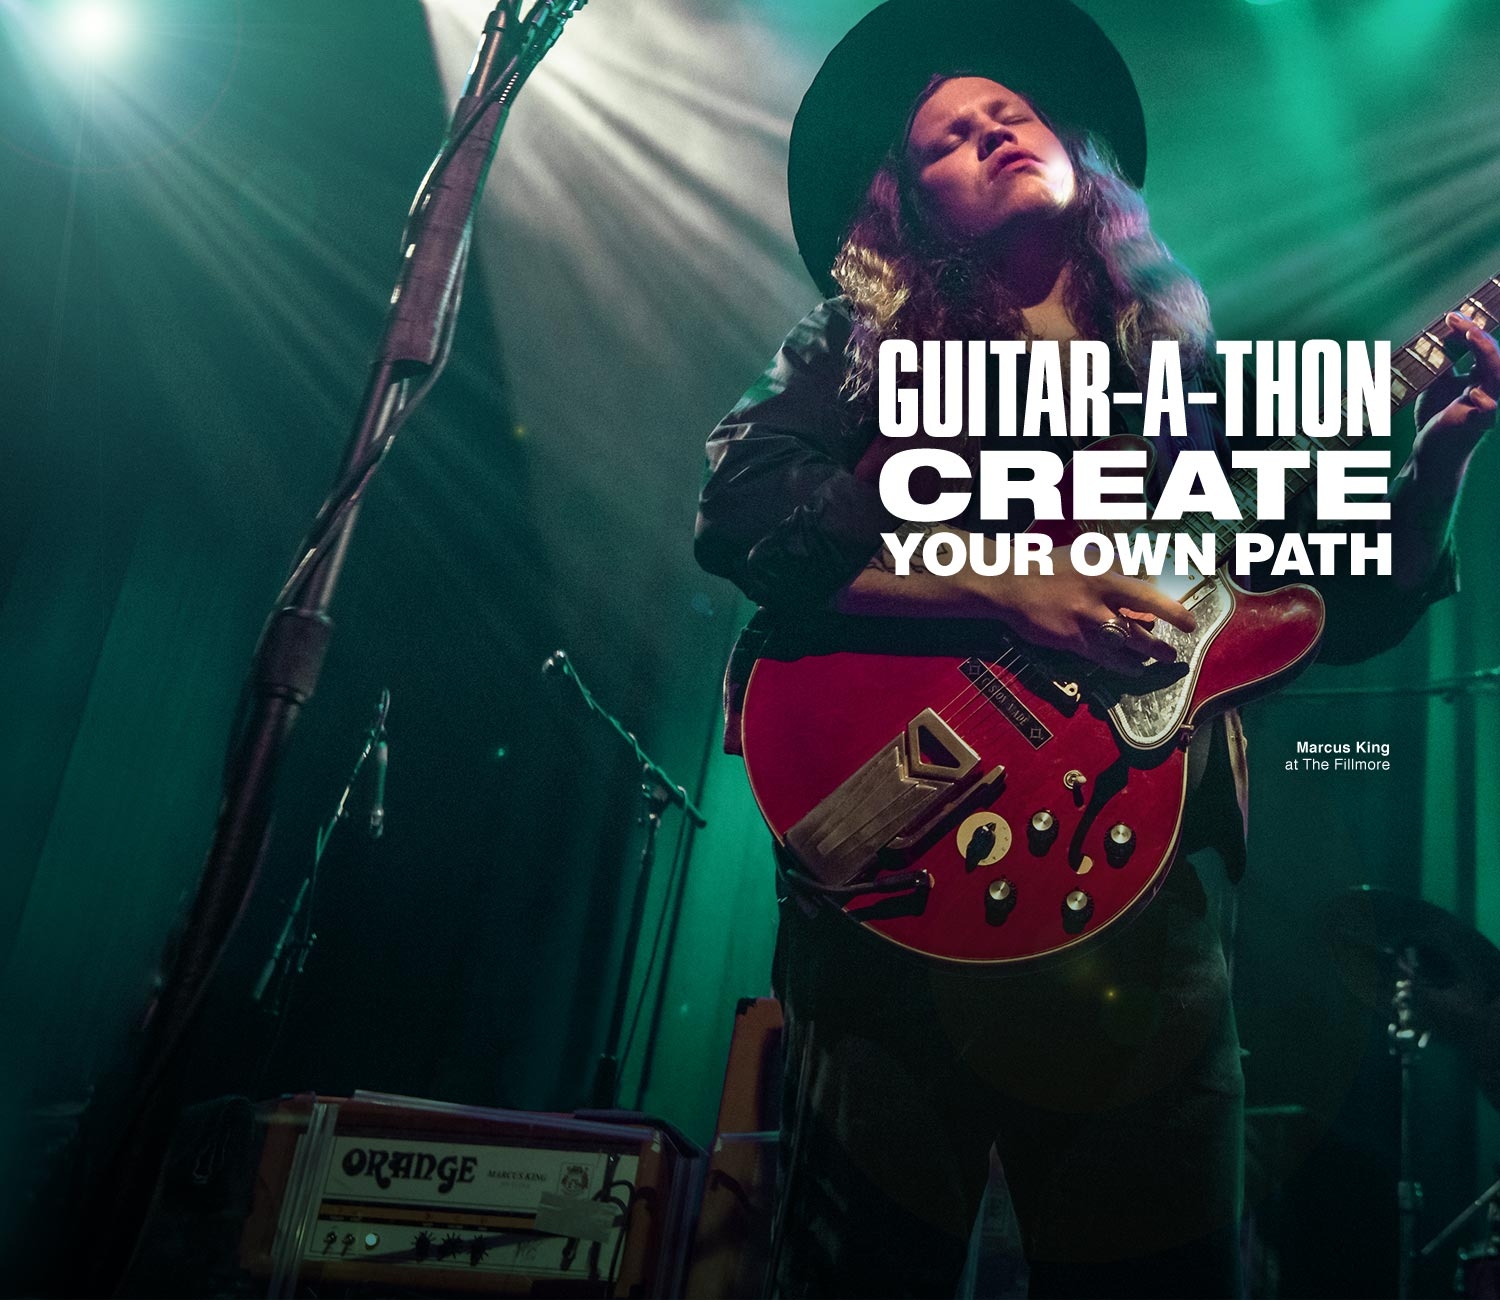 Guitar-A-Thon. Create your own path.